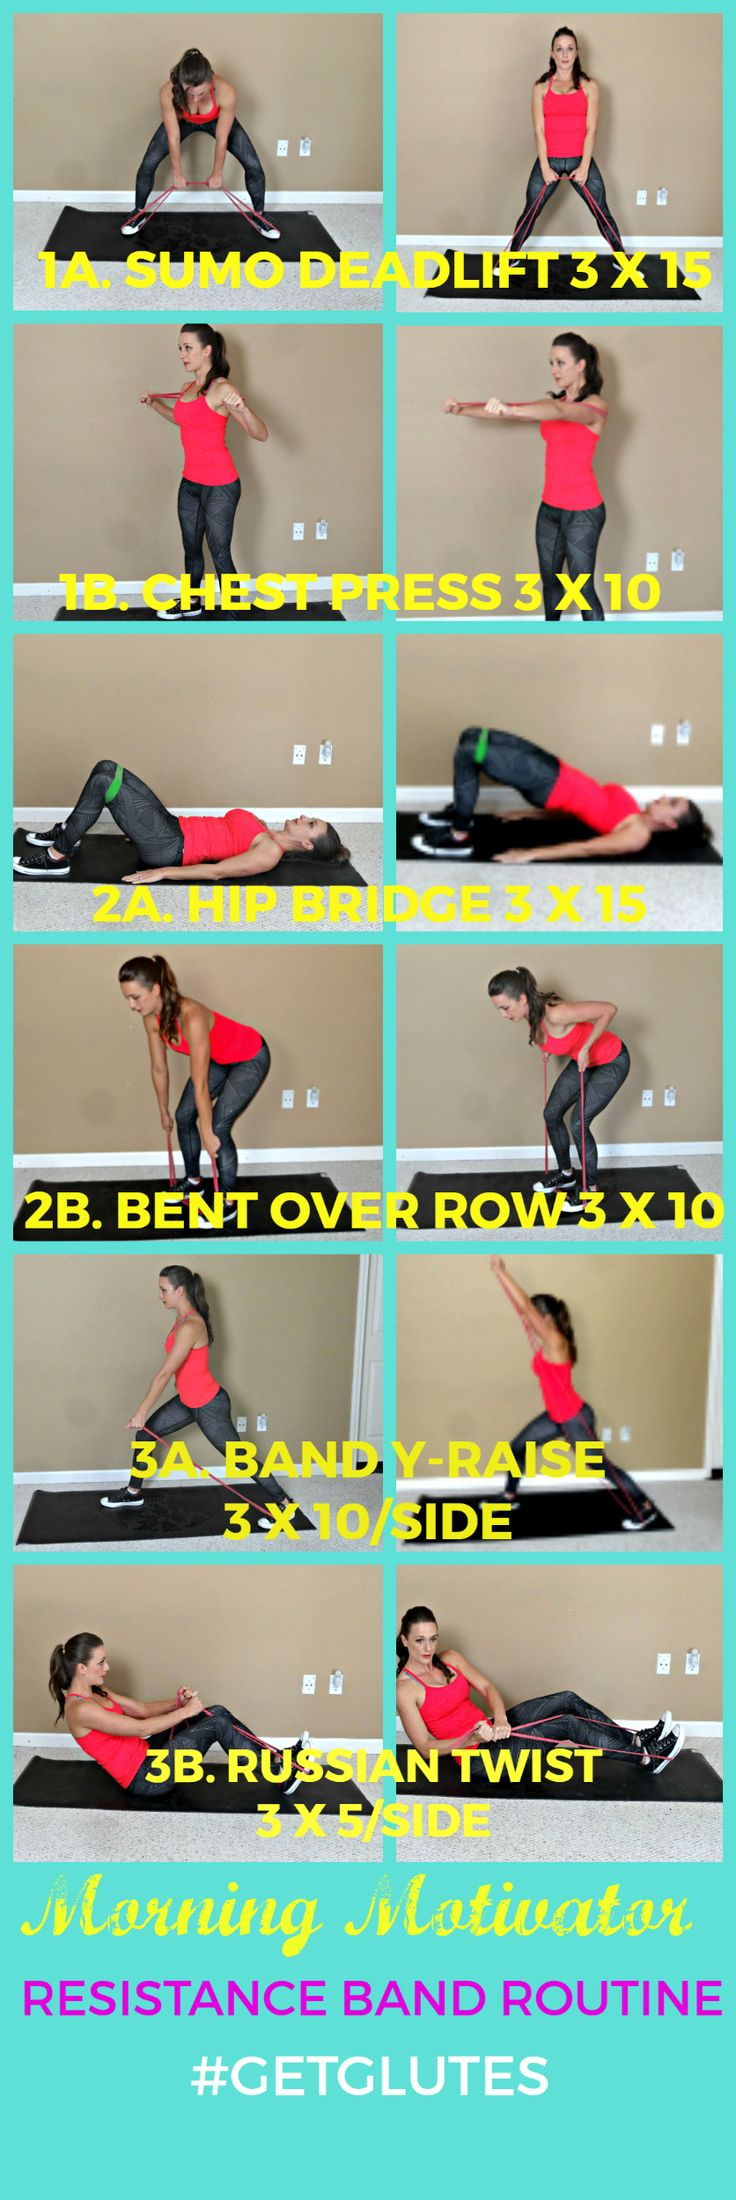 RISE AND SHINE! Need a little morning pick-me-up? Try this awesome Morning Motivator Band Exercise Routine. Share if this looks like a great way to start your day! (coffee somewhat optional) ;) #g (Mma Workout)